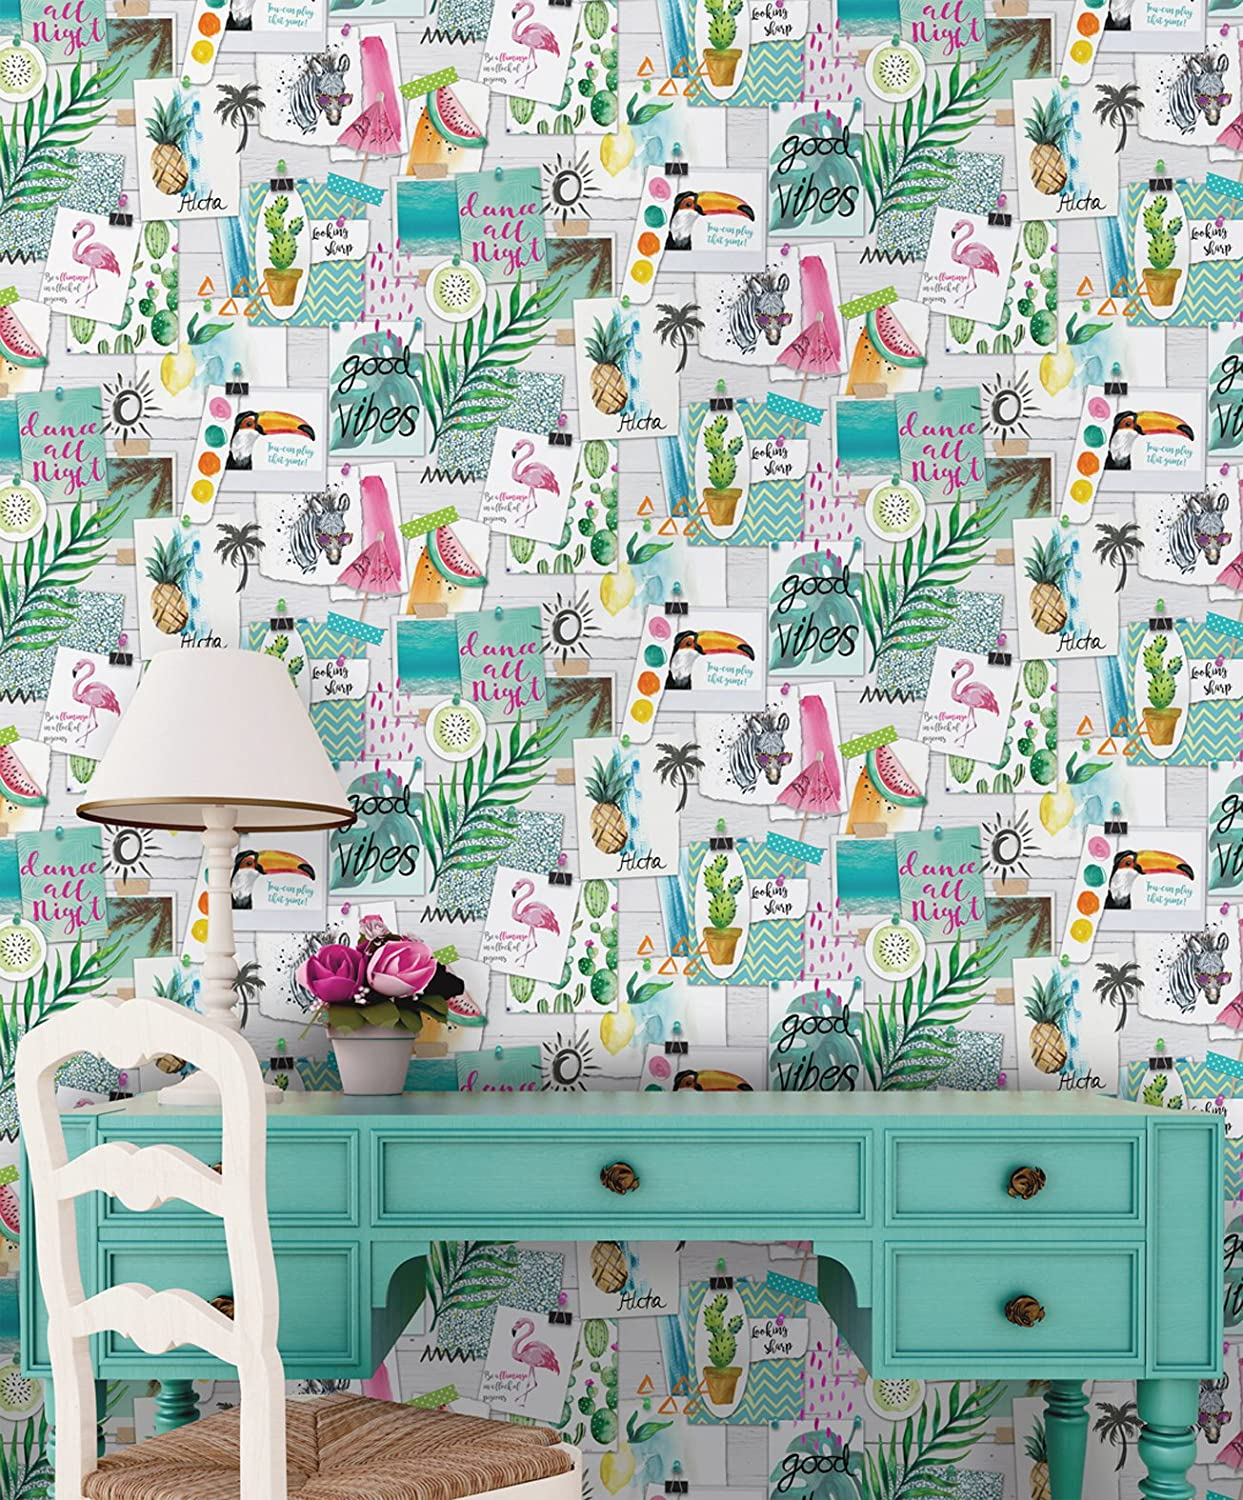 Holden Decor 12150 Paper Collection Imaginarium Wallpaper 10.05 x 0.53 m